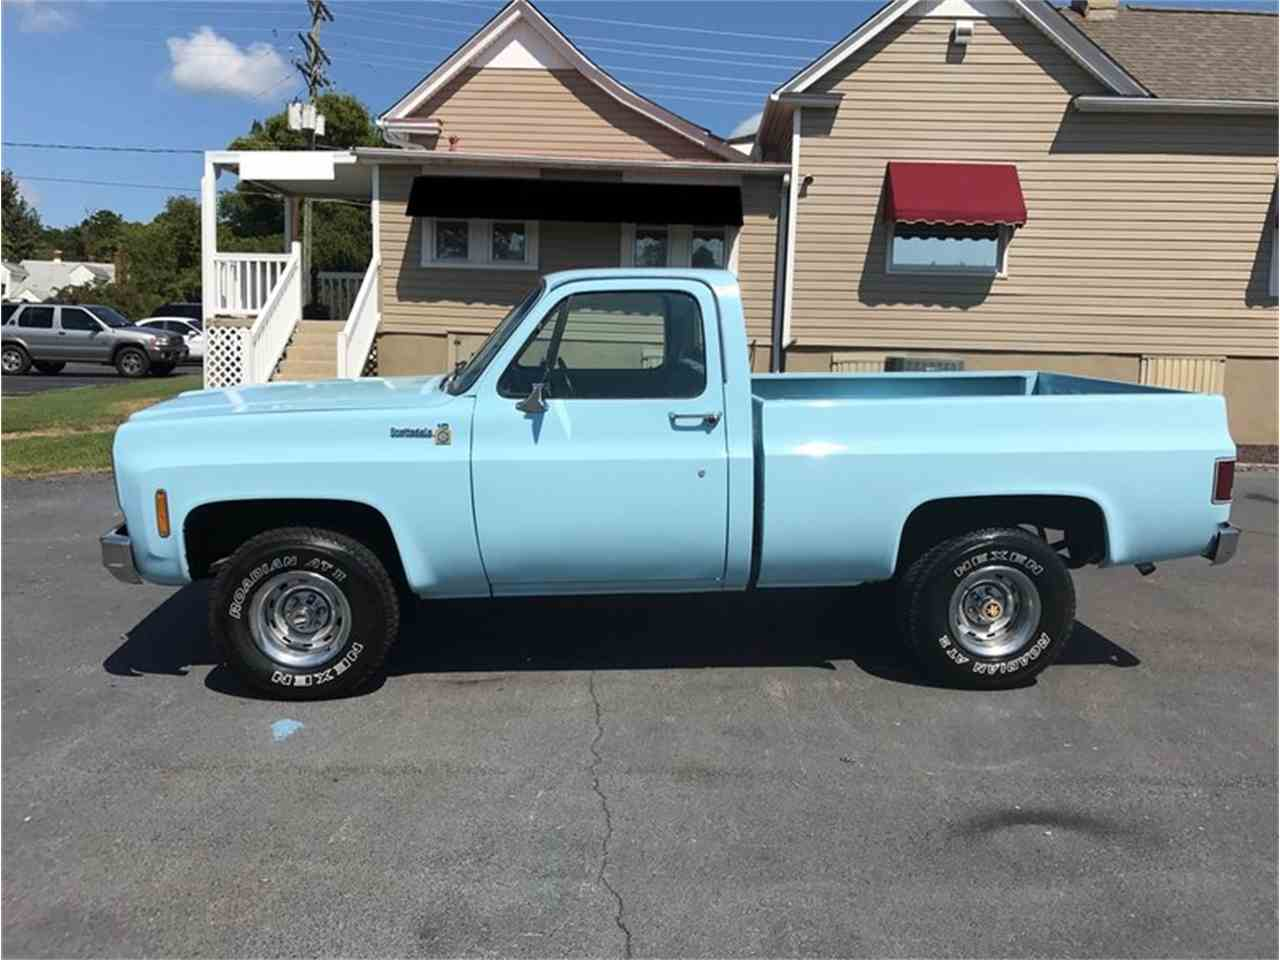 Large Picture of '77 C10 located in Greensboro North Carolina Auction Vehicle - LVFH